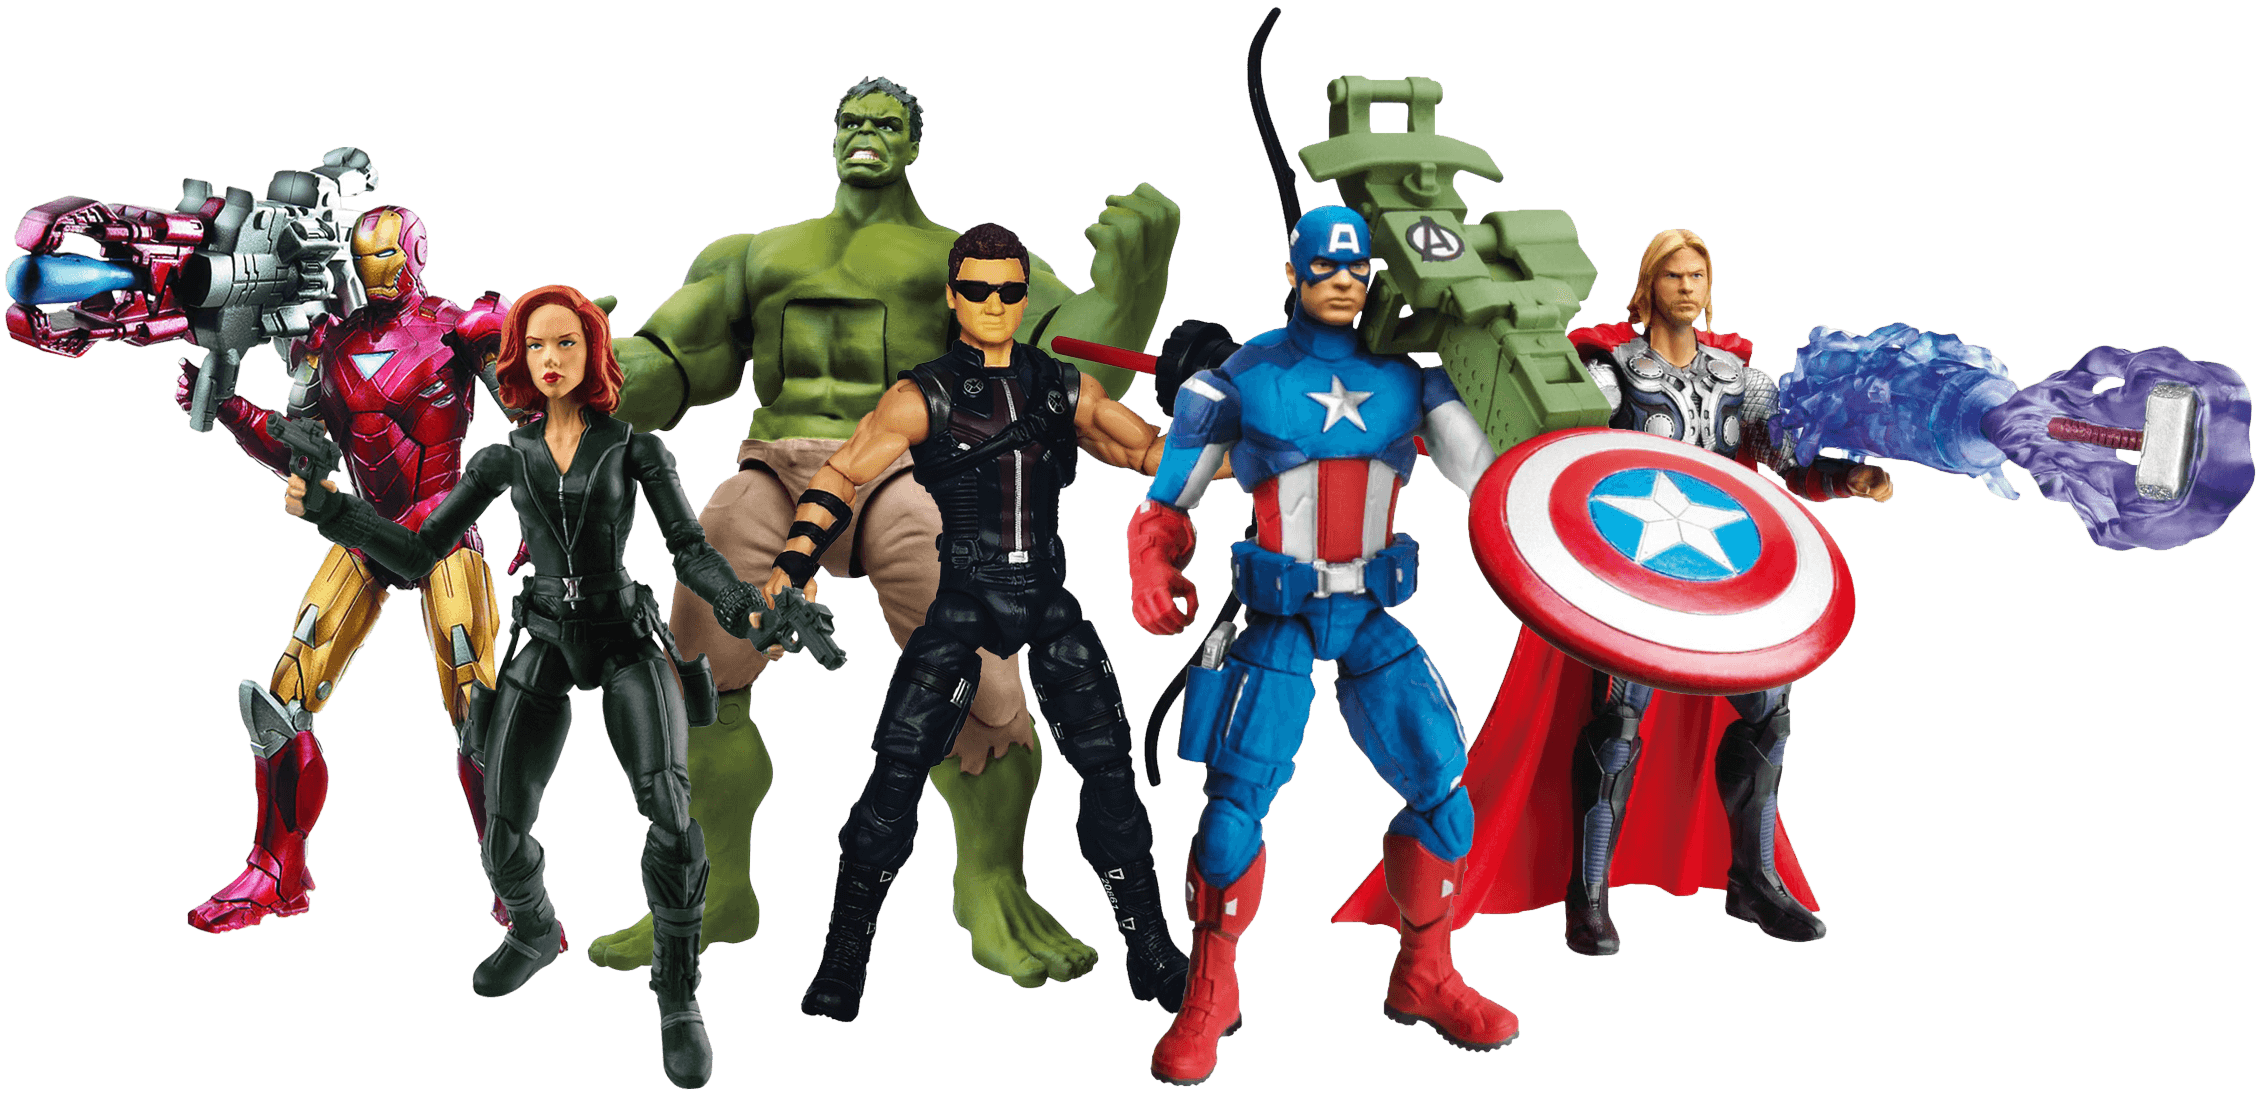 huge freebie download. Spaceship clipart avengers